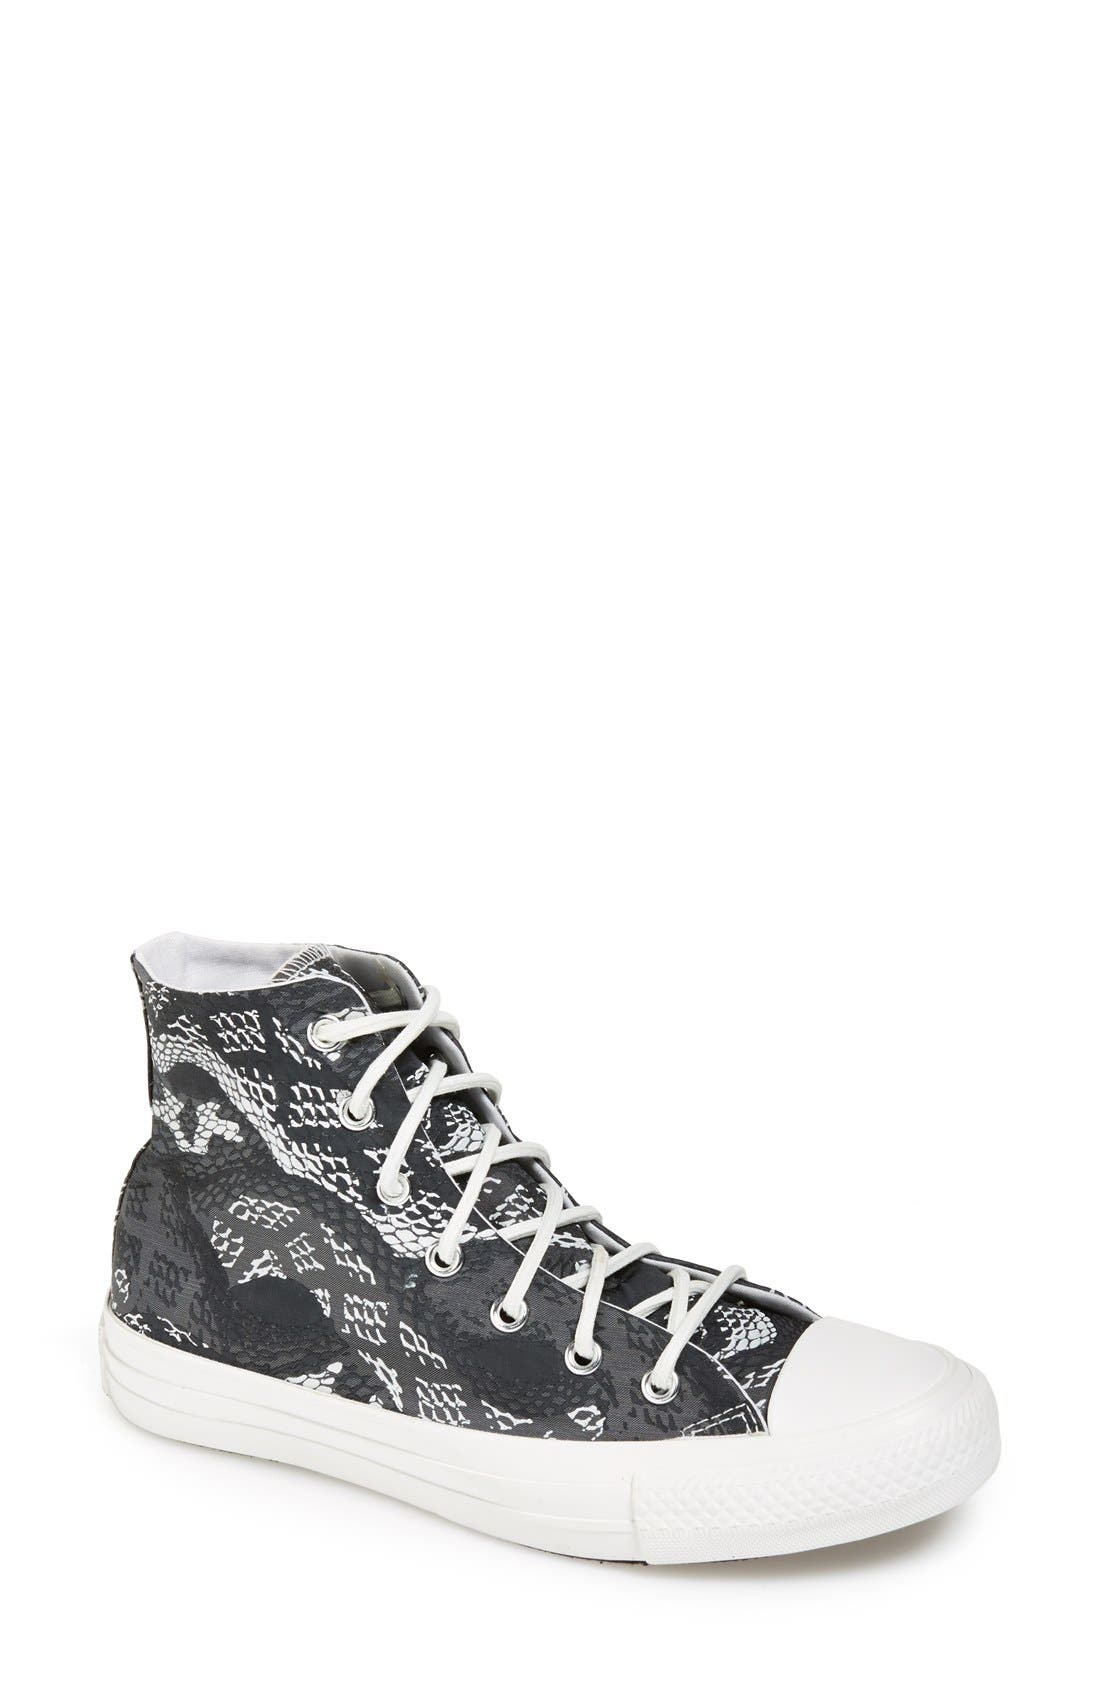 Alternate Image 1 Selected - Converse Chuck Taylor® 'Reptile Print' High Top Sneaker (Women)